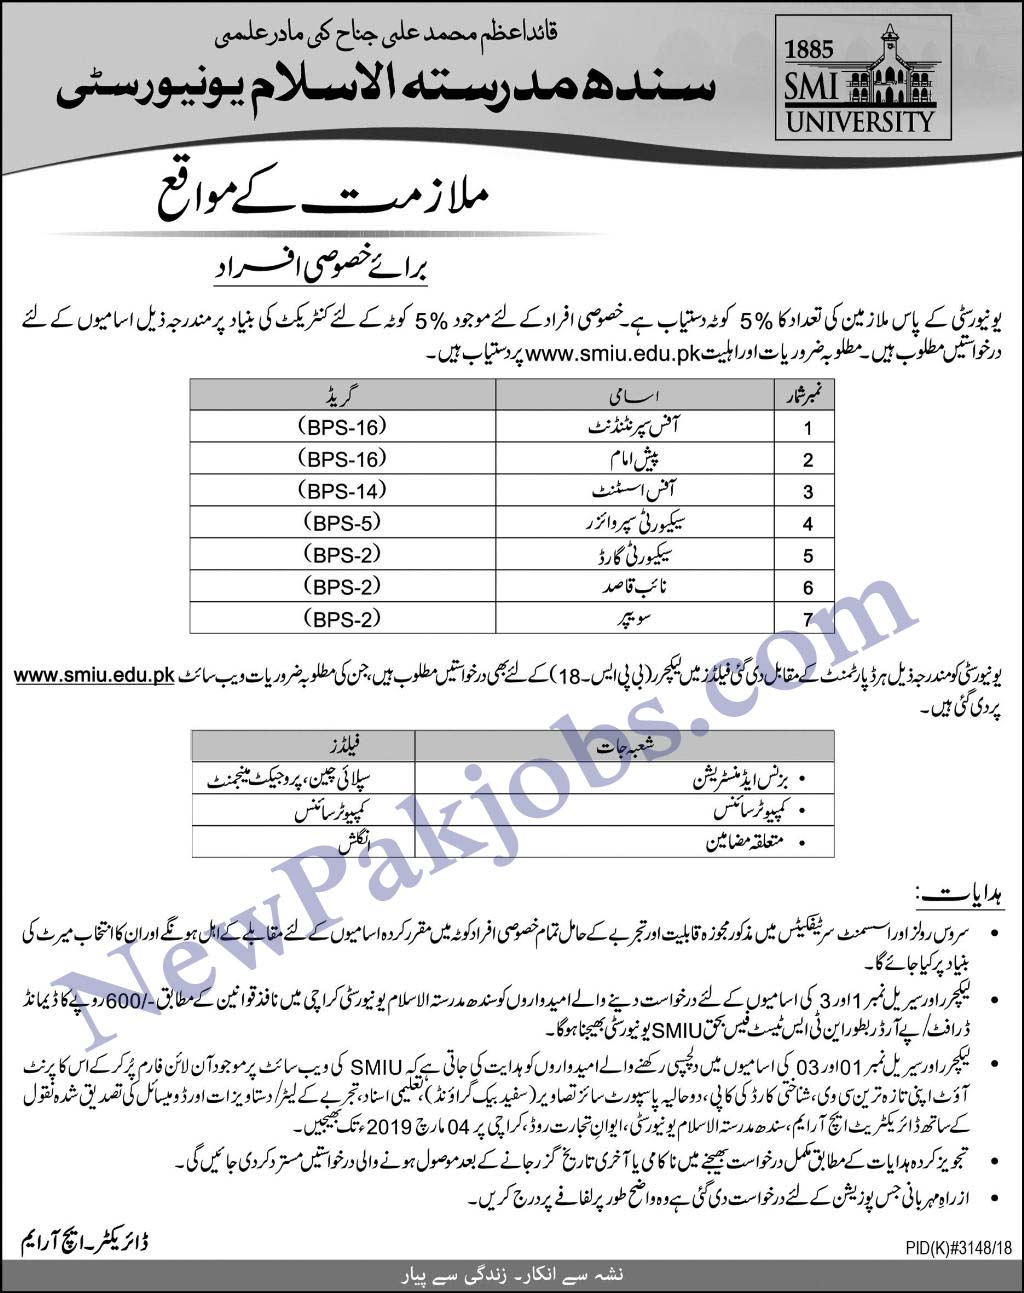 Sindh Madressatul Islam University Jobs 2019